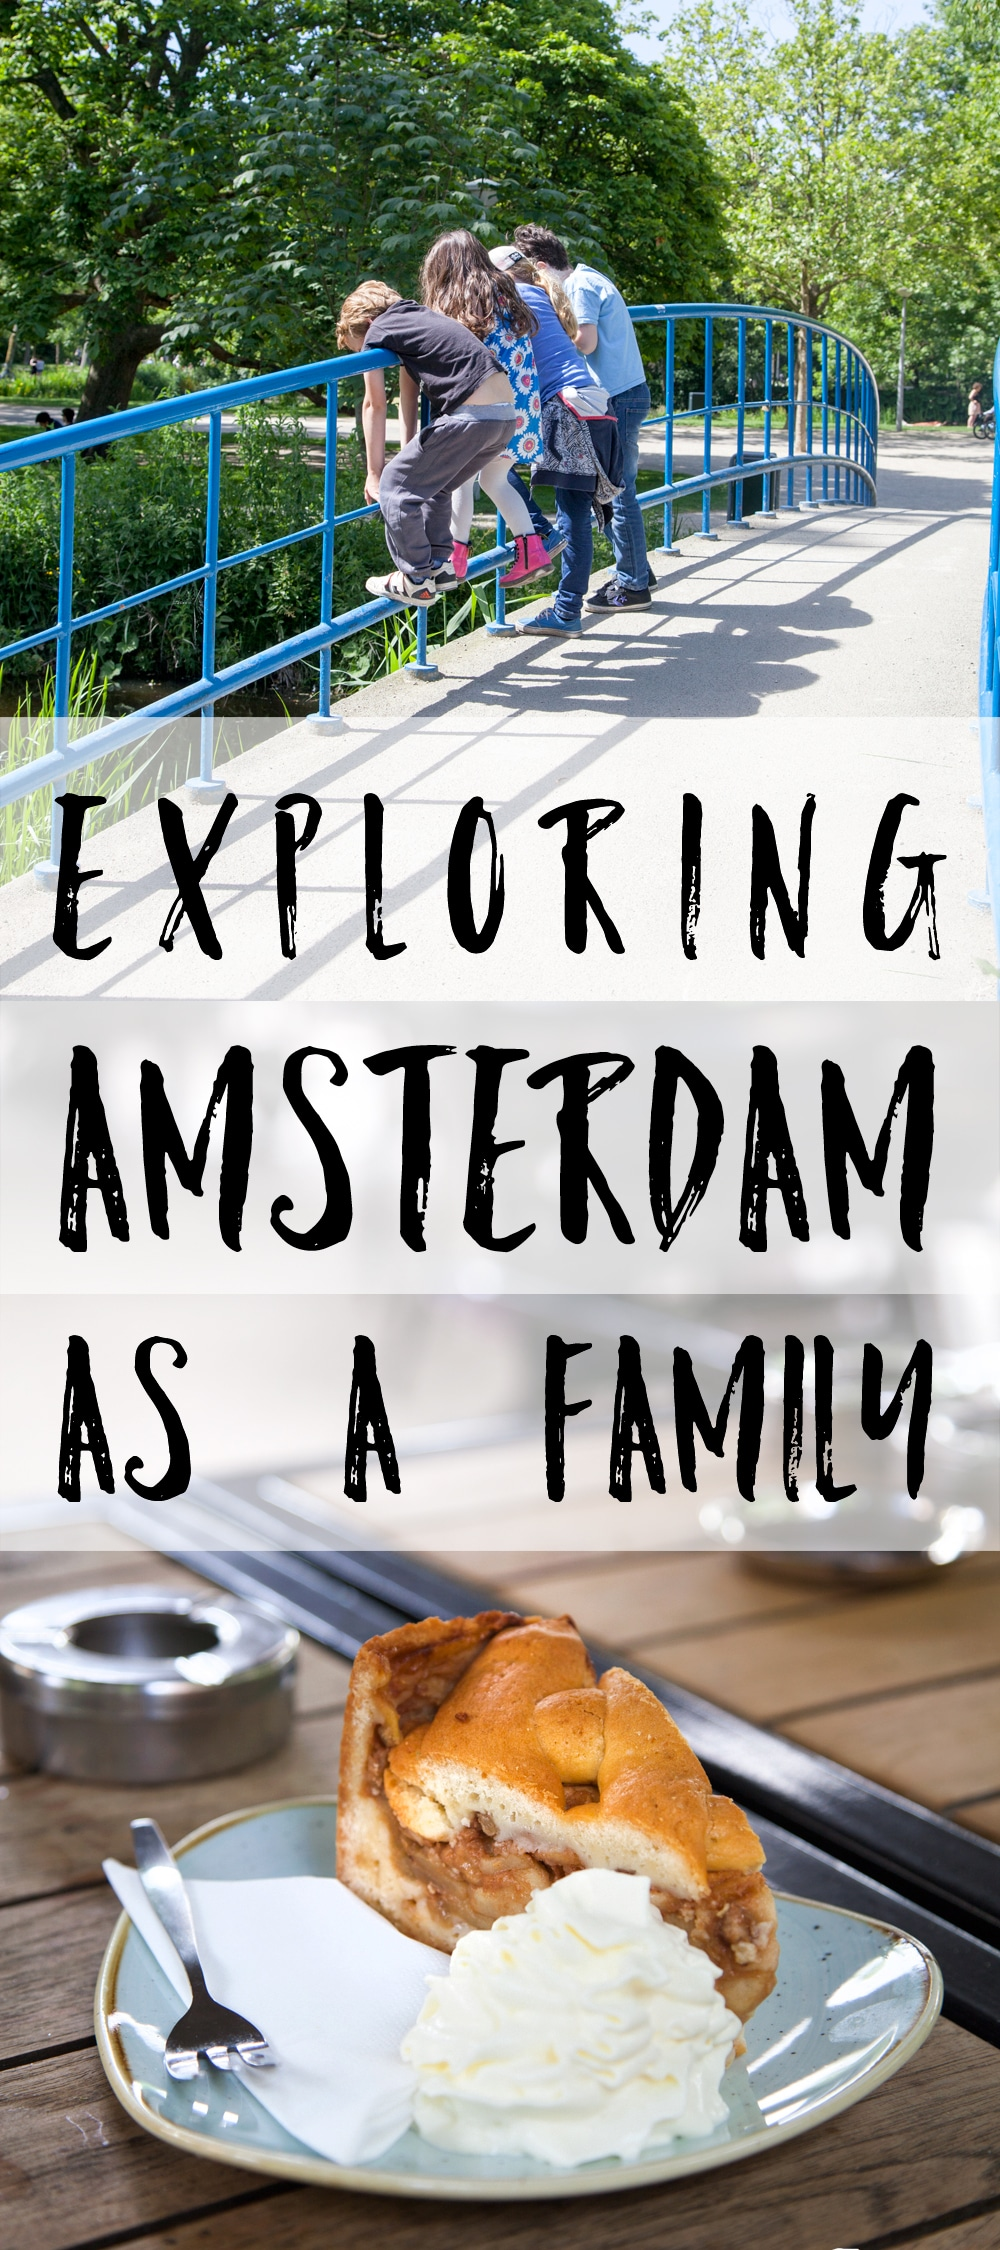 Exploring Amsterdam as a family - the best things to see, do and eat when visiting the city with children.